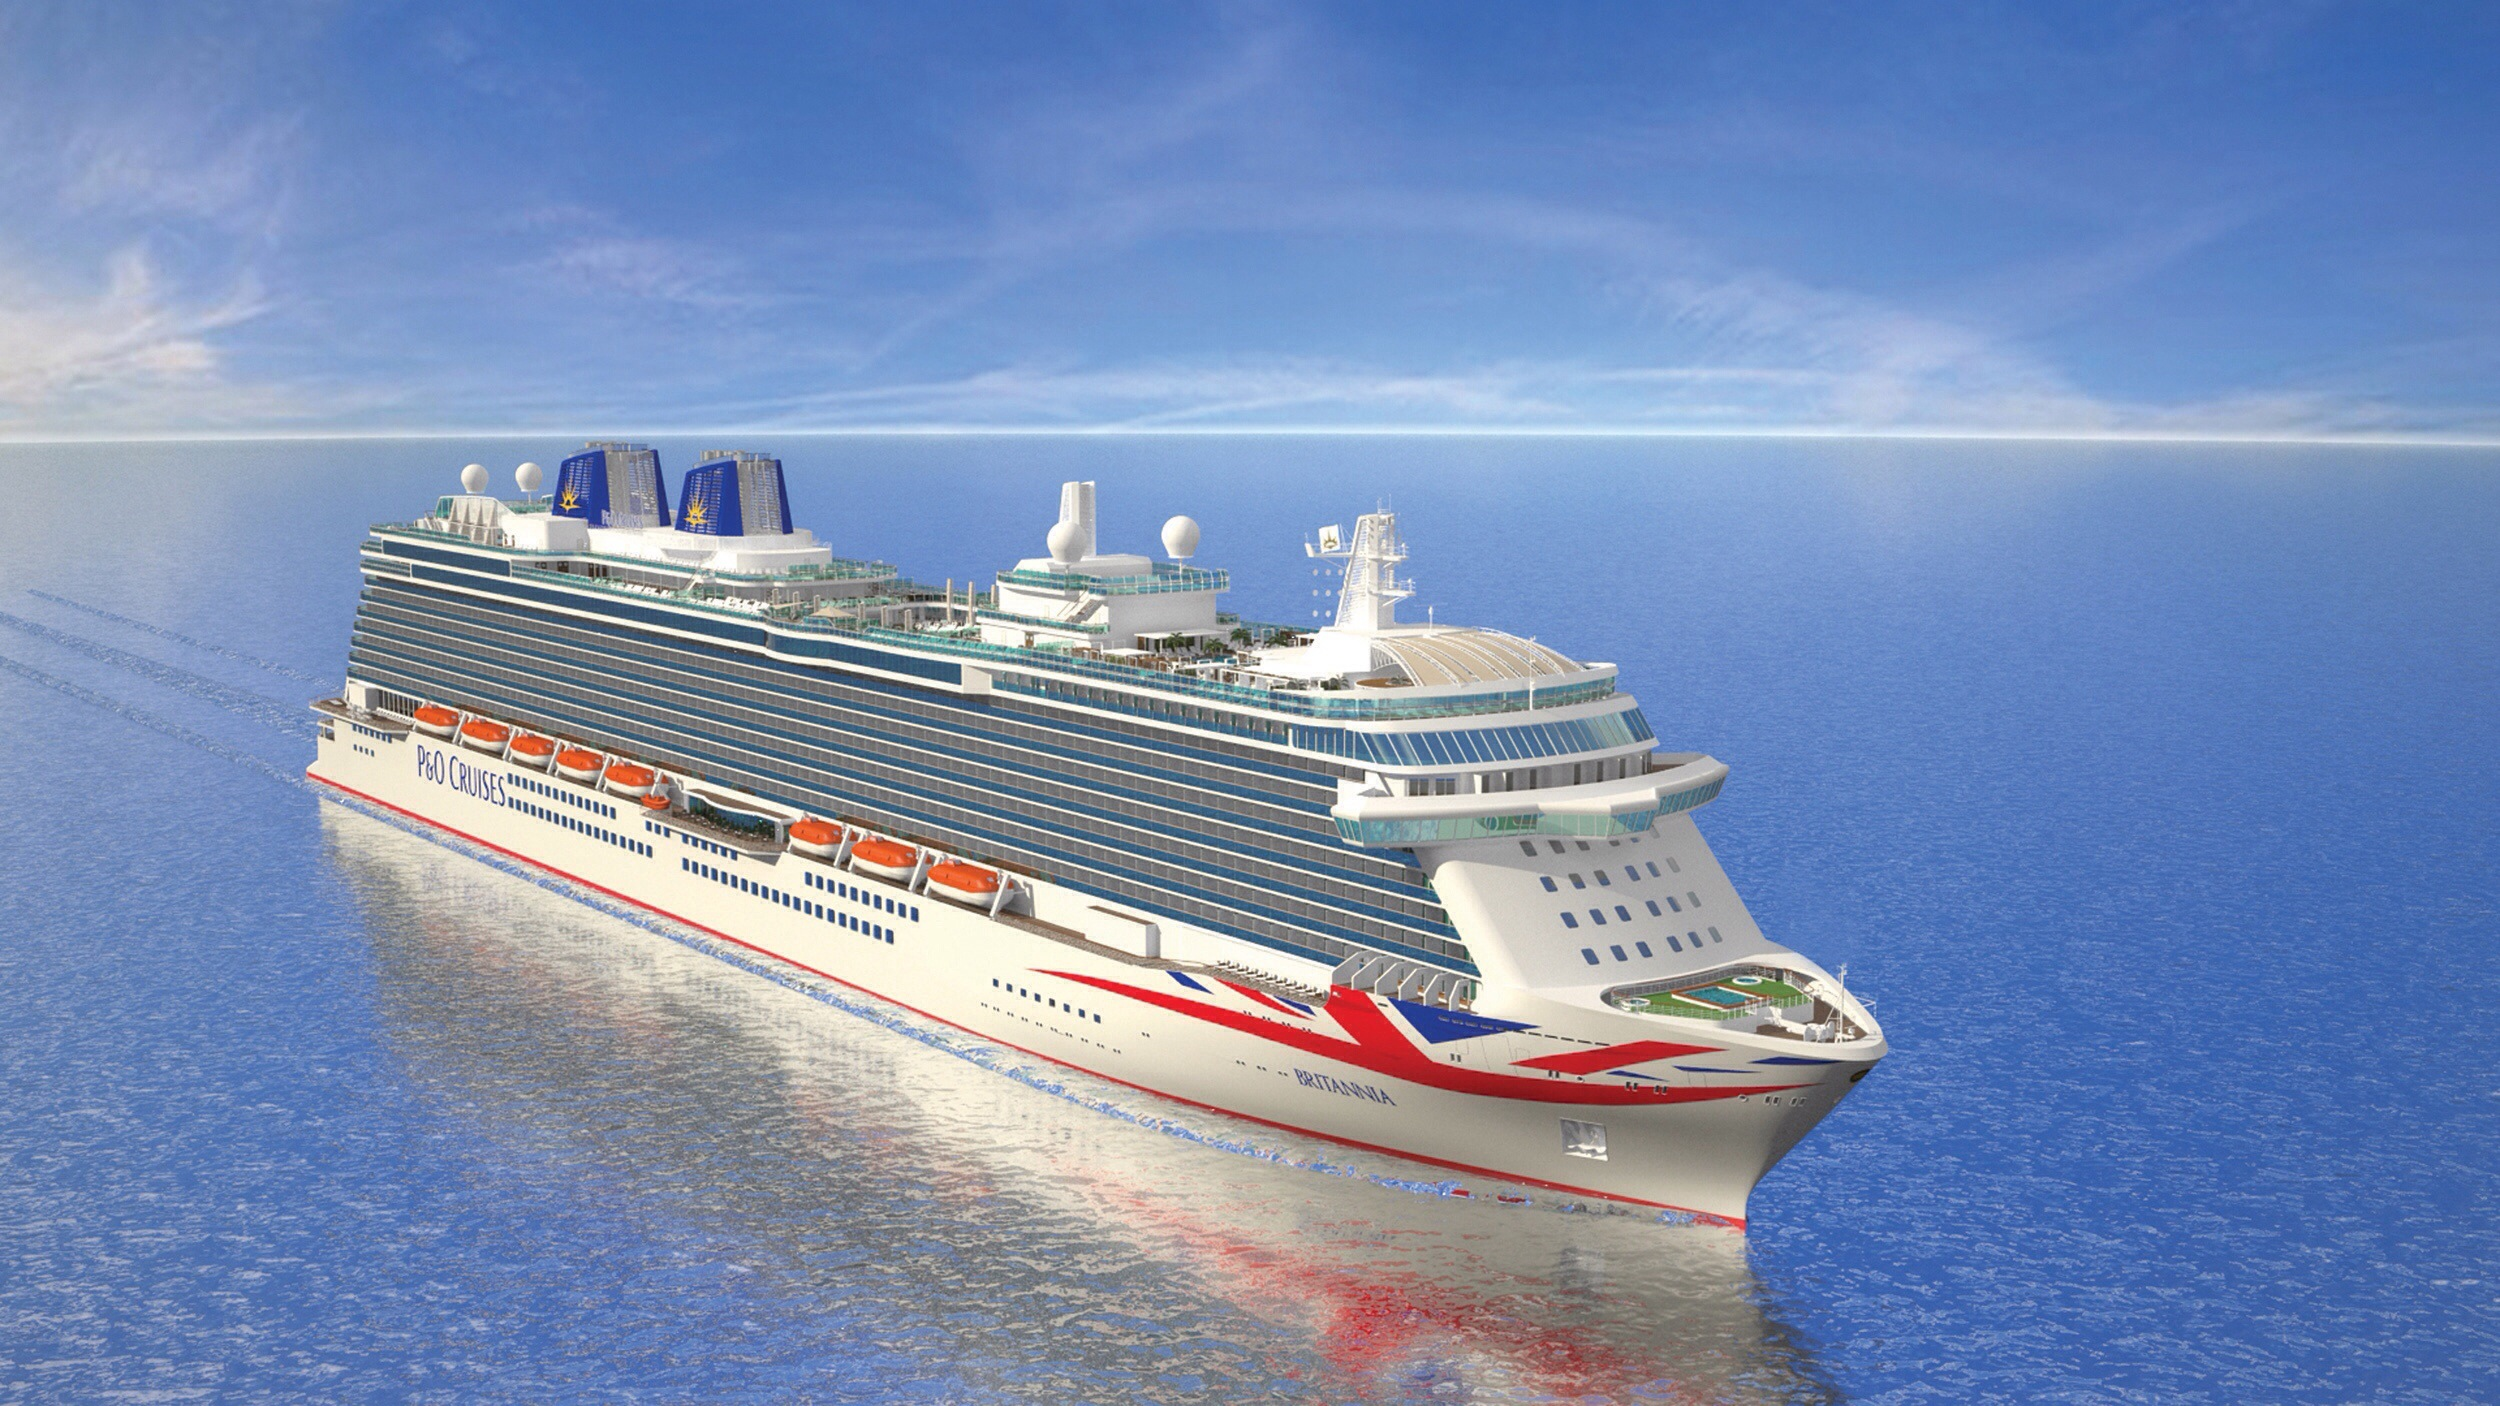 Flying the flag: Britannia will show off its British heritage